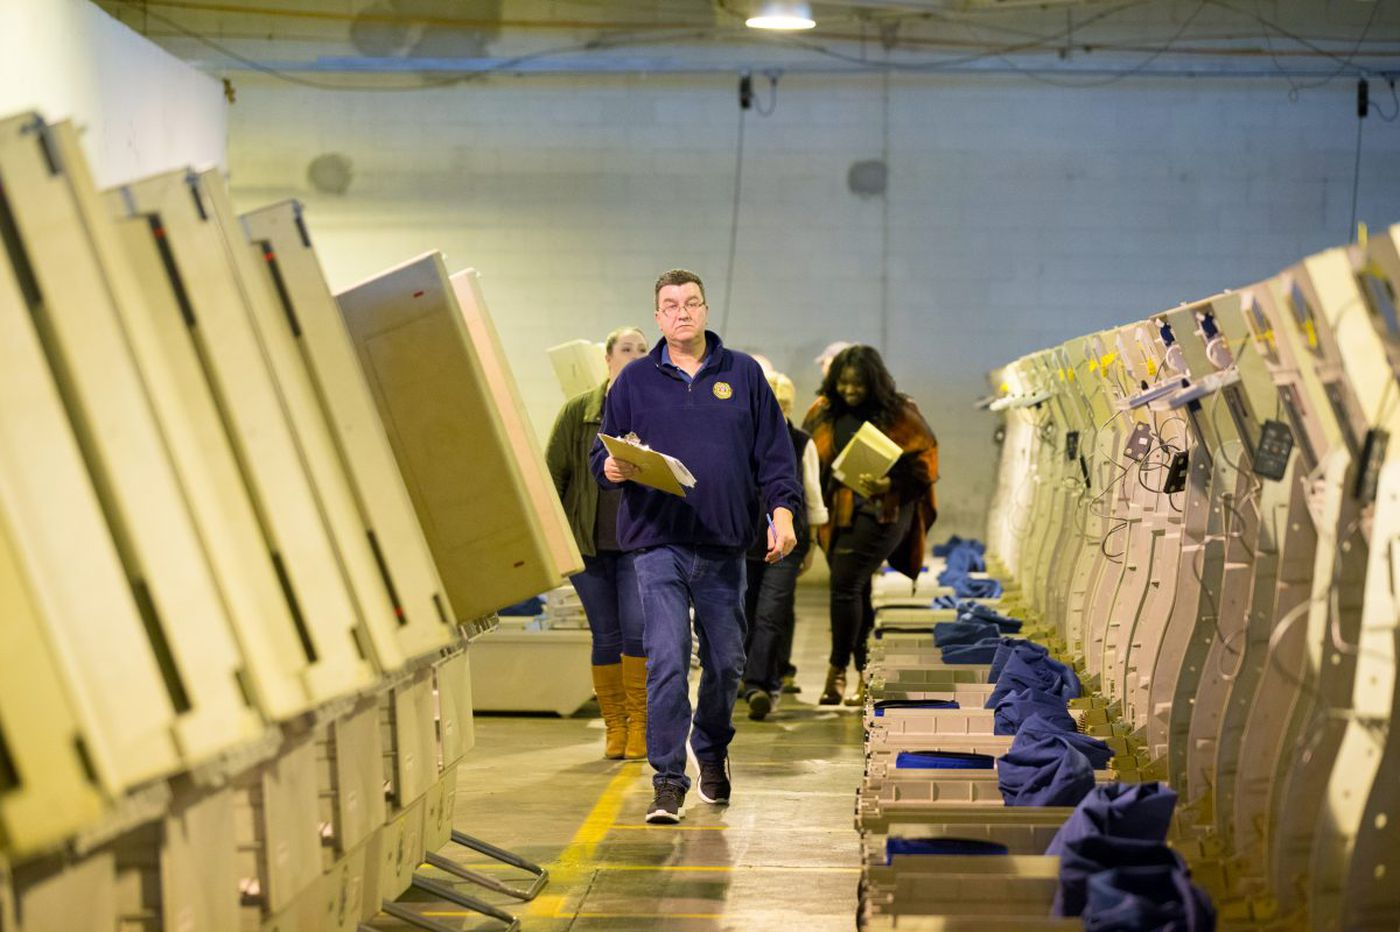 Time has come for Pa. to modernize its voting machines | Opinion